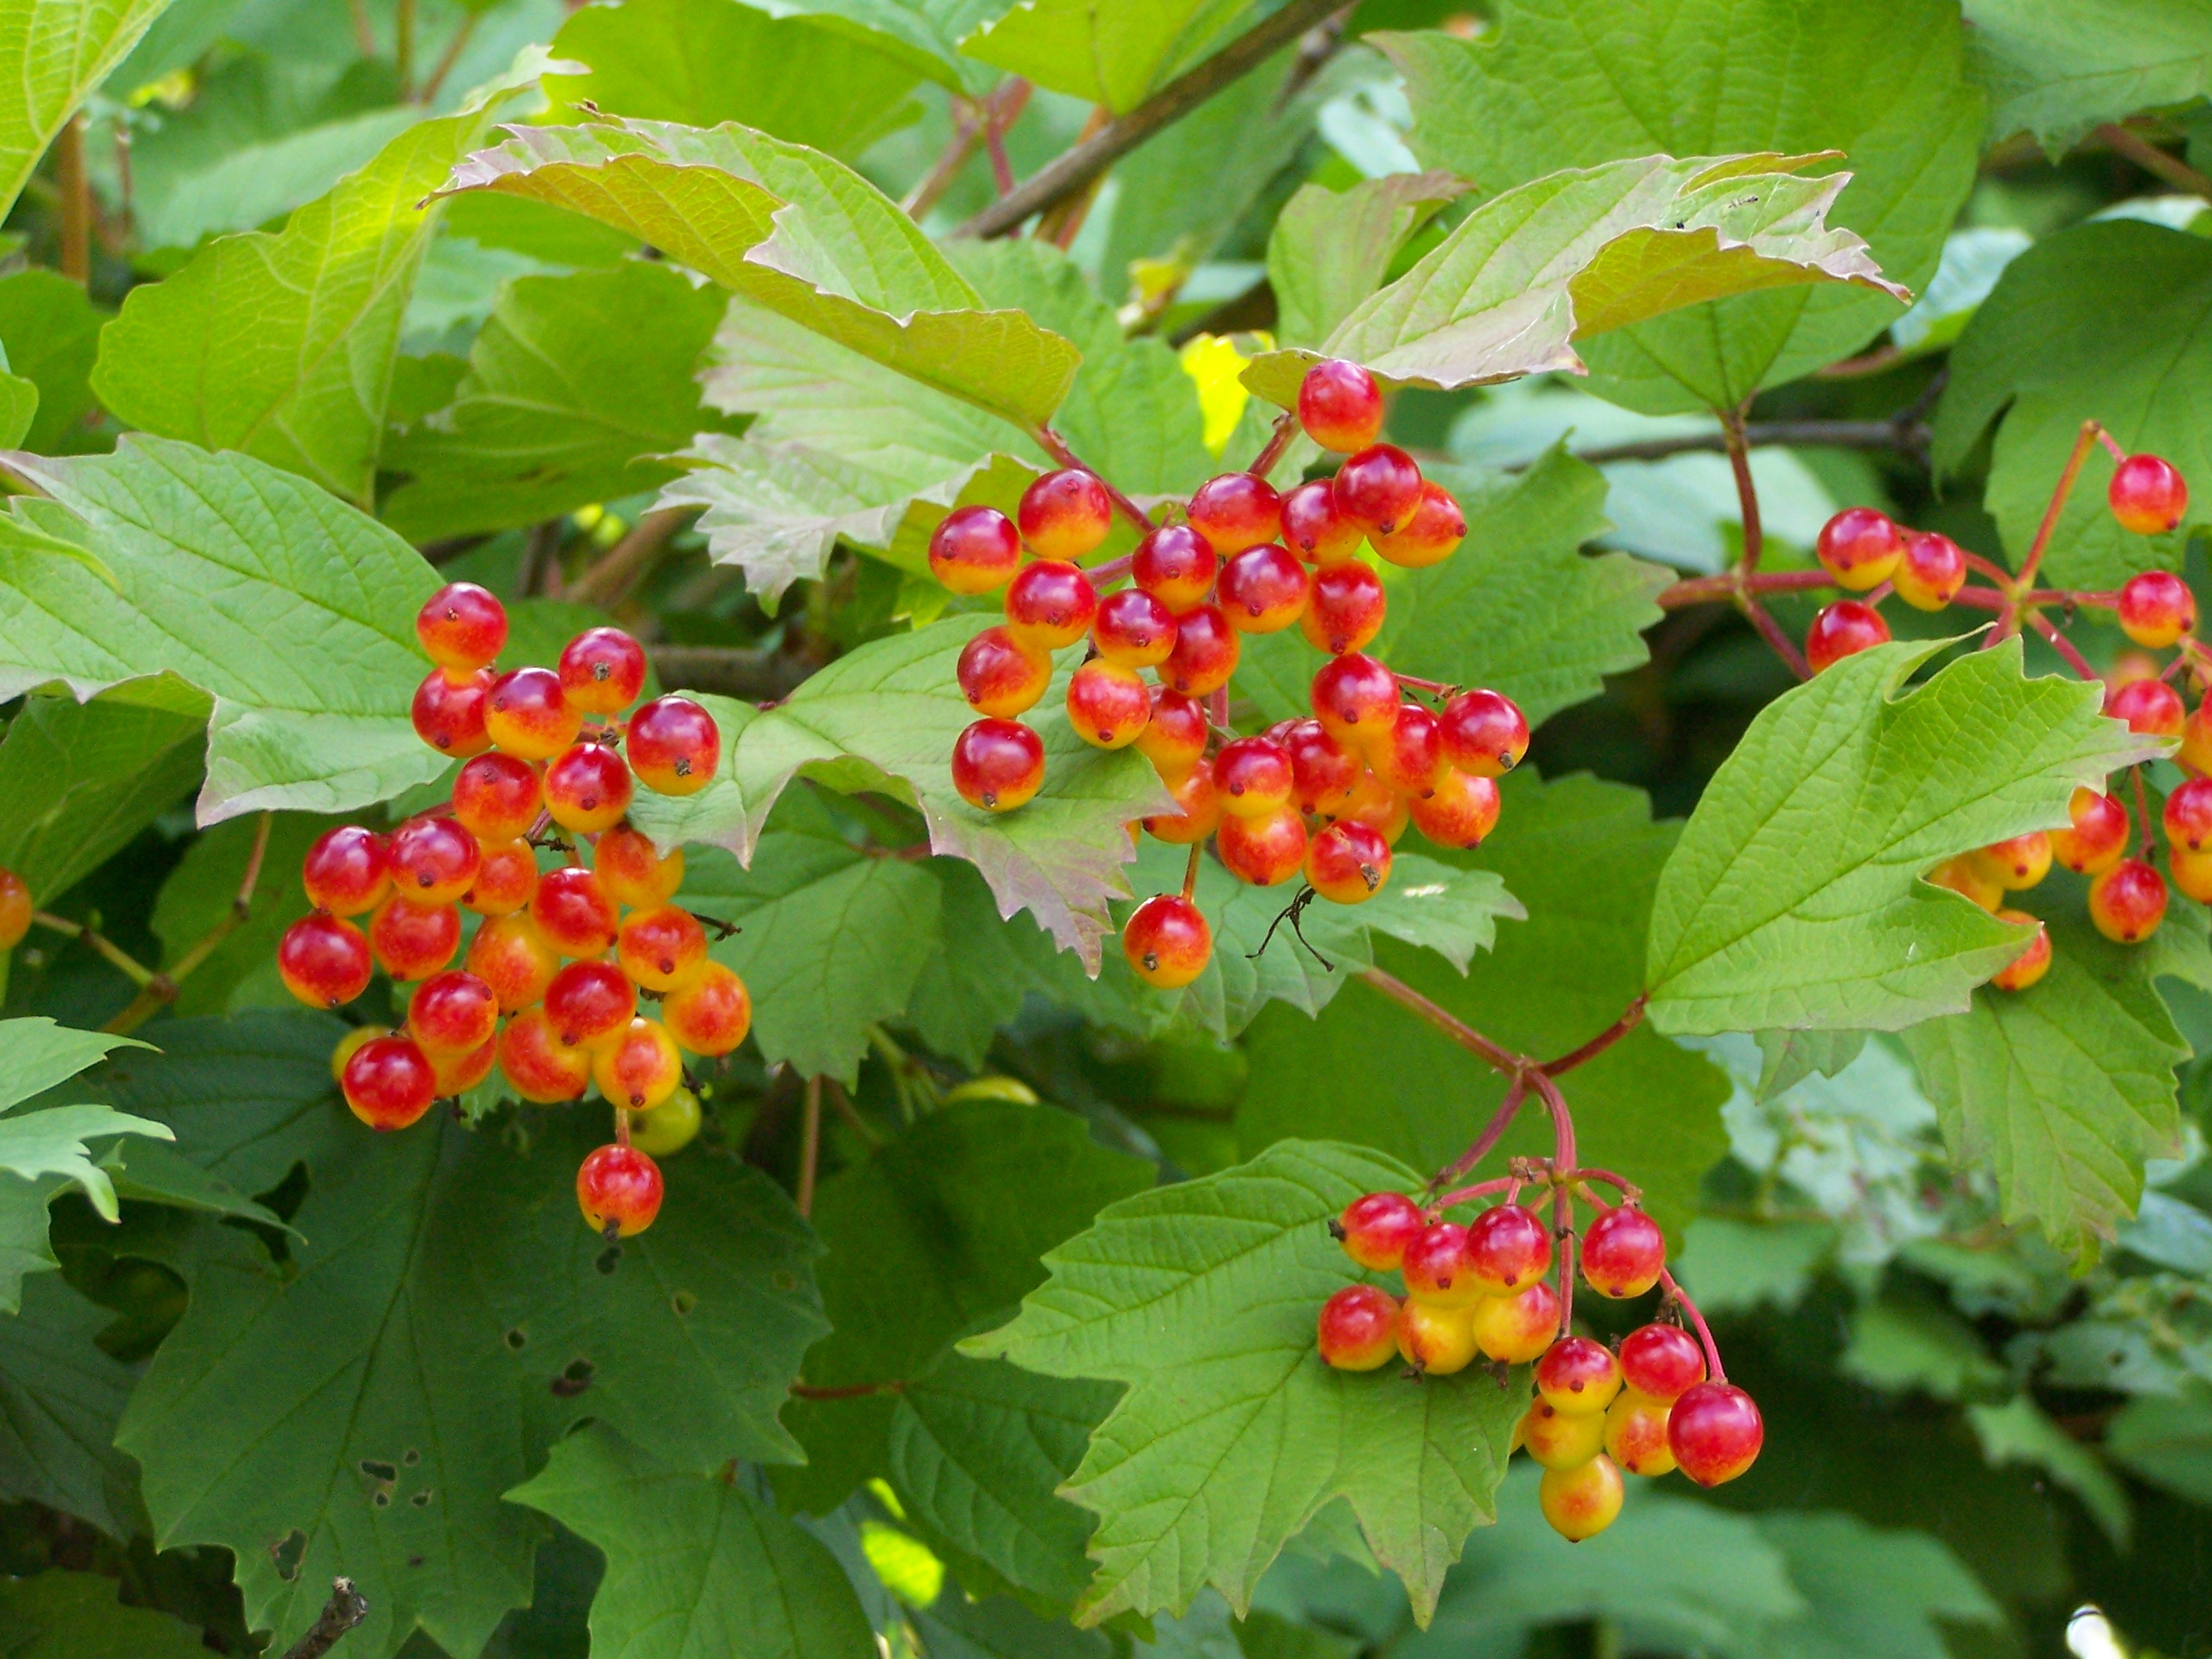 Viburnum opulus plant with fruit. Photo taken by Jan Mehlich on July 14, 2007